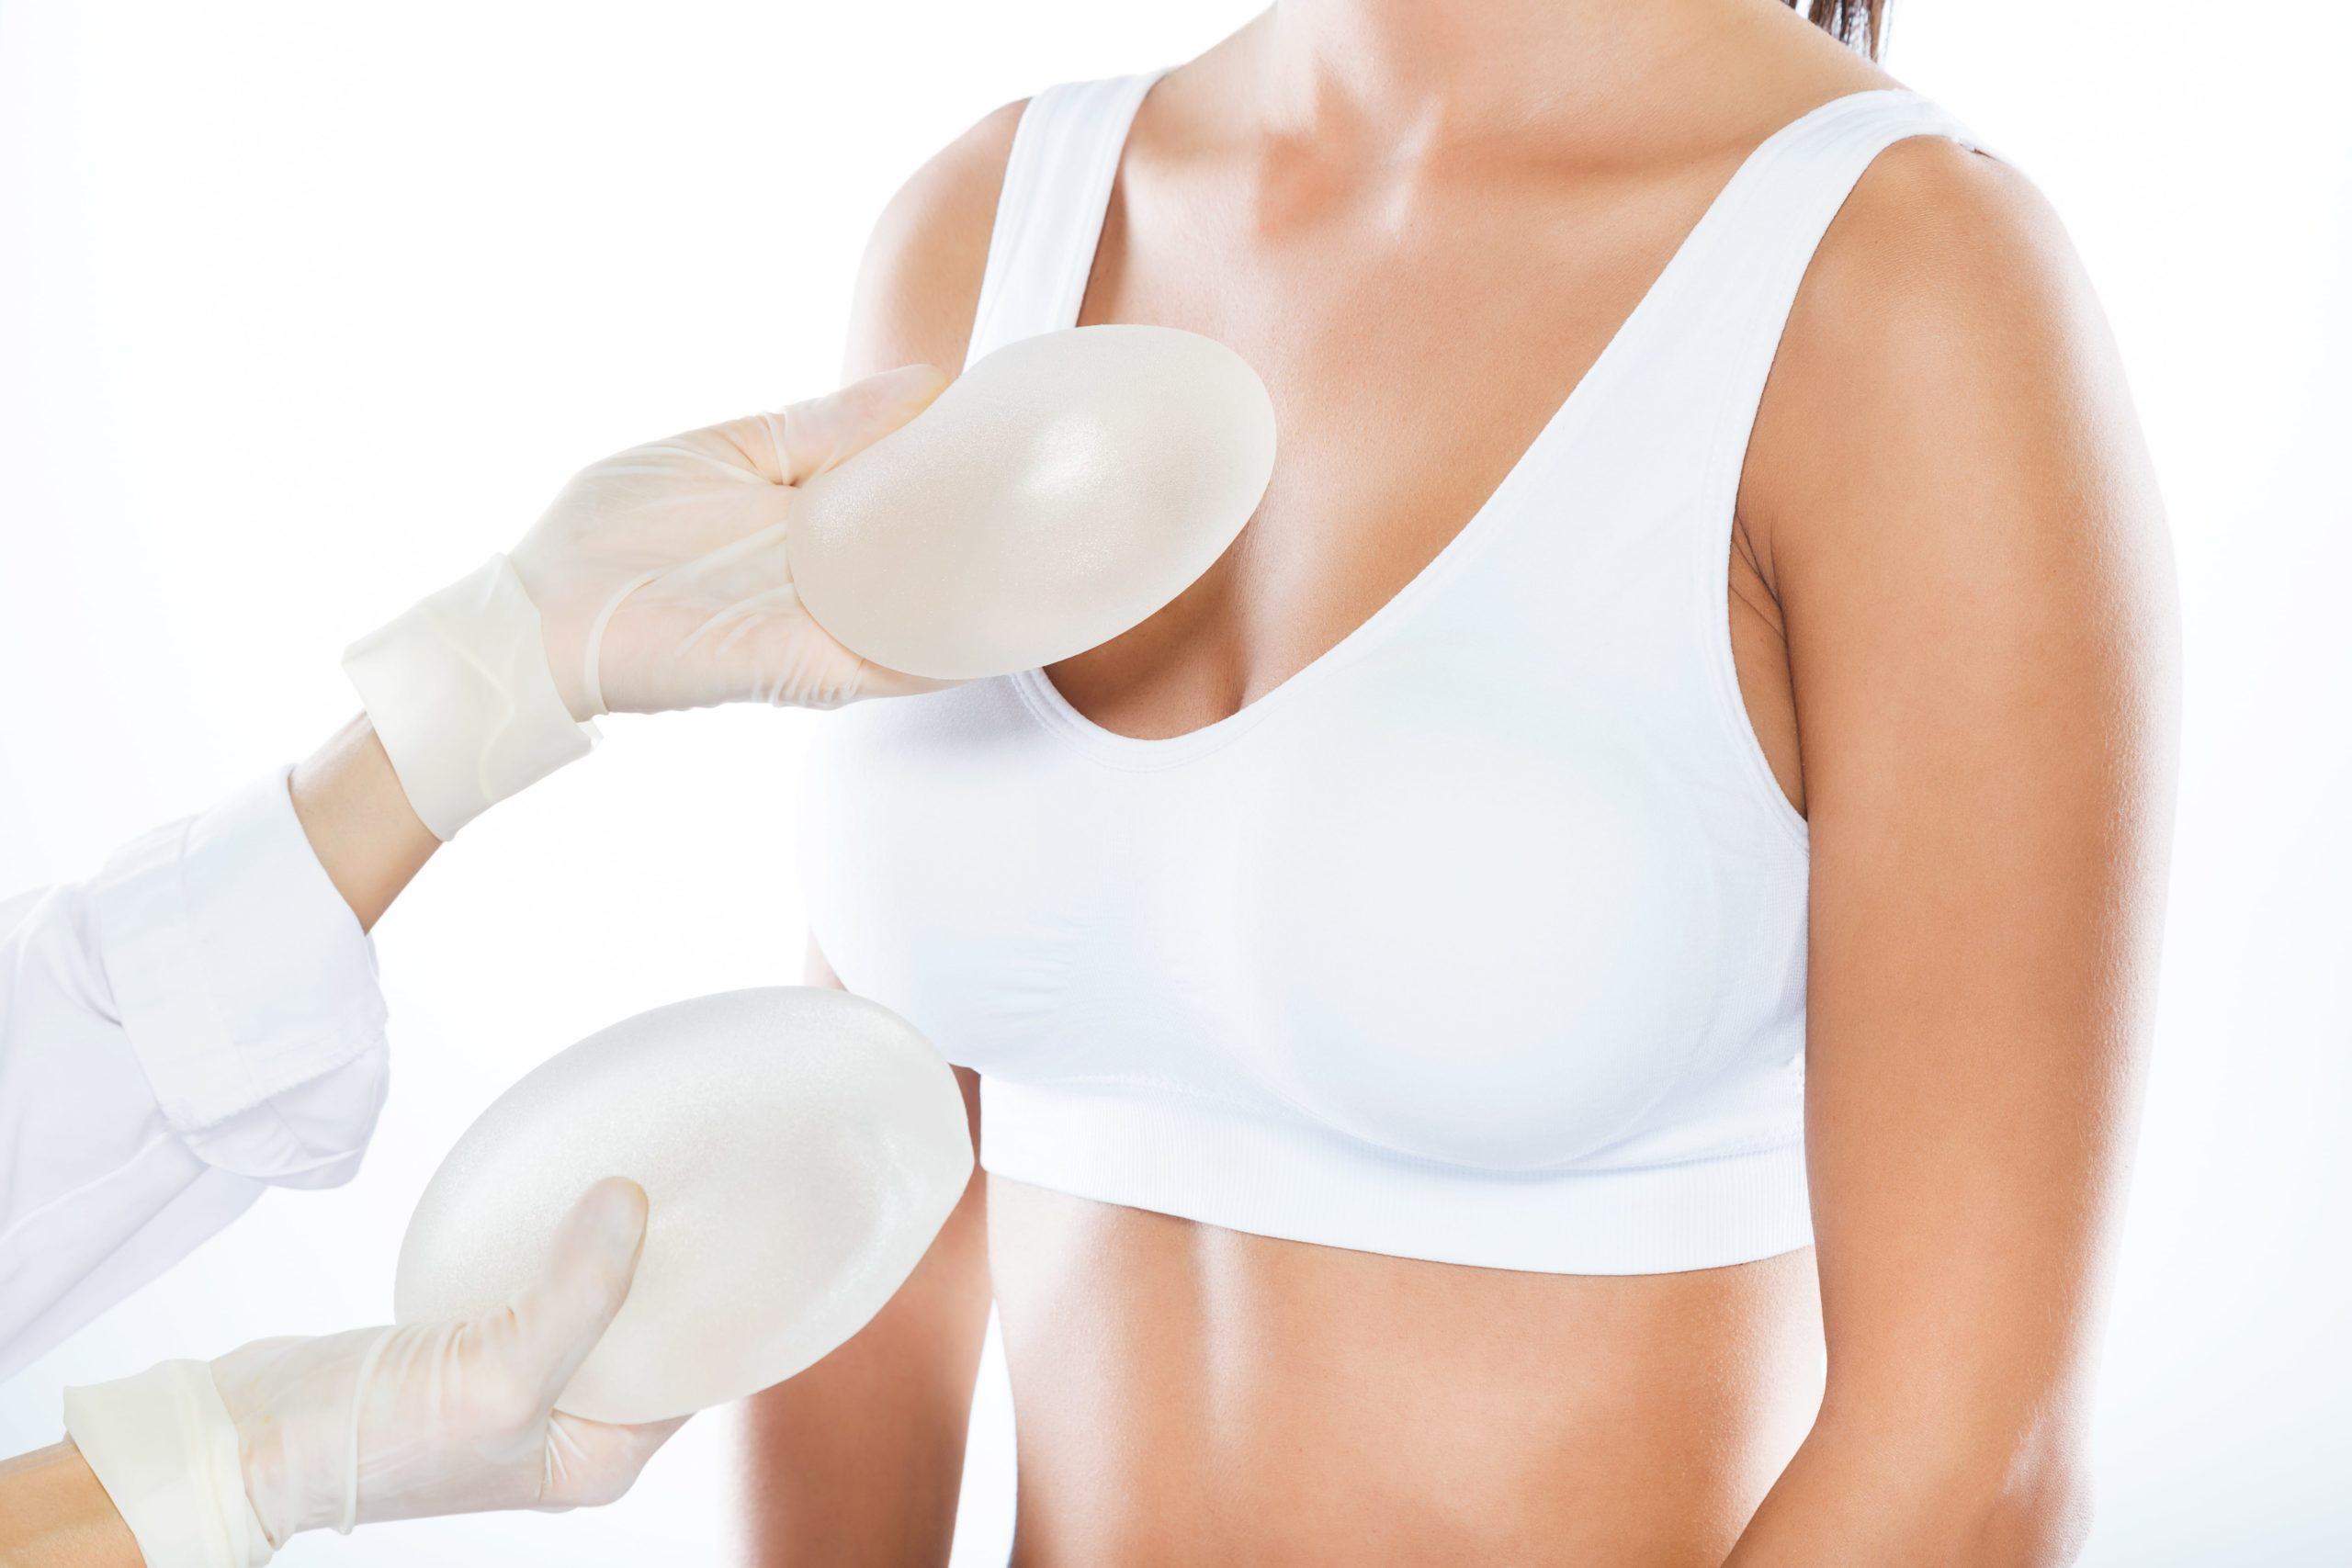 breast augmentation of women, breast enhancement of women